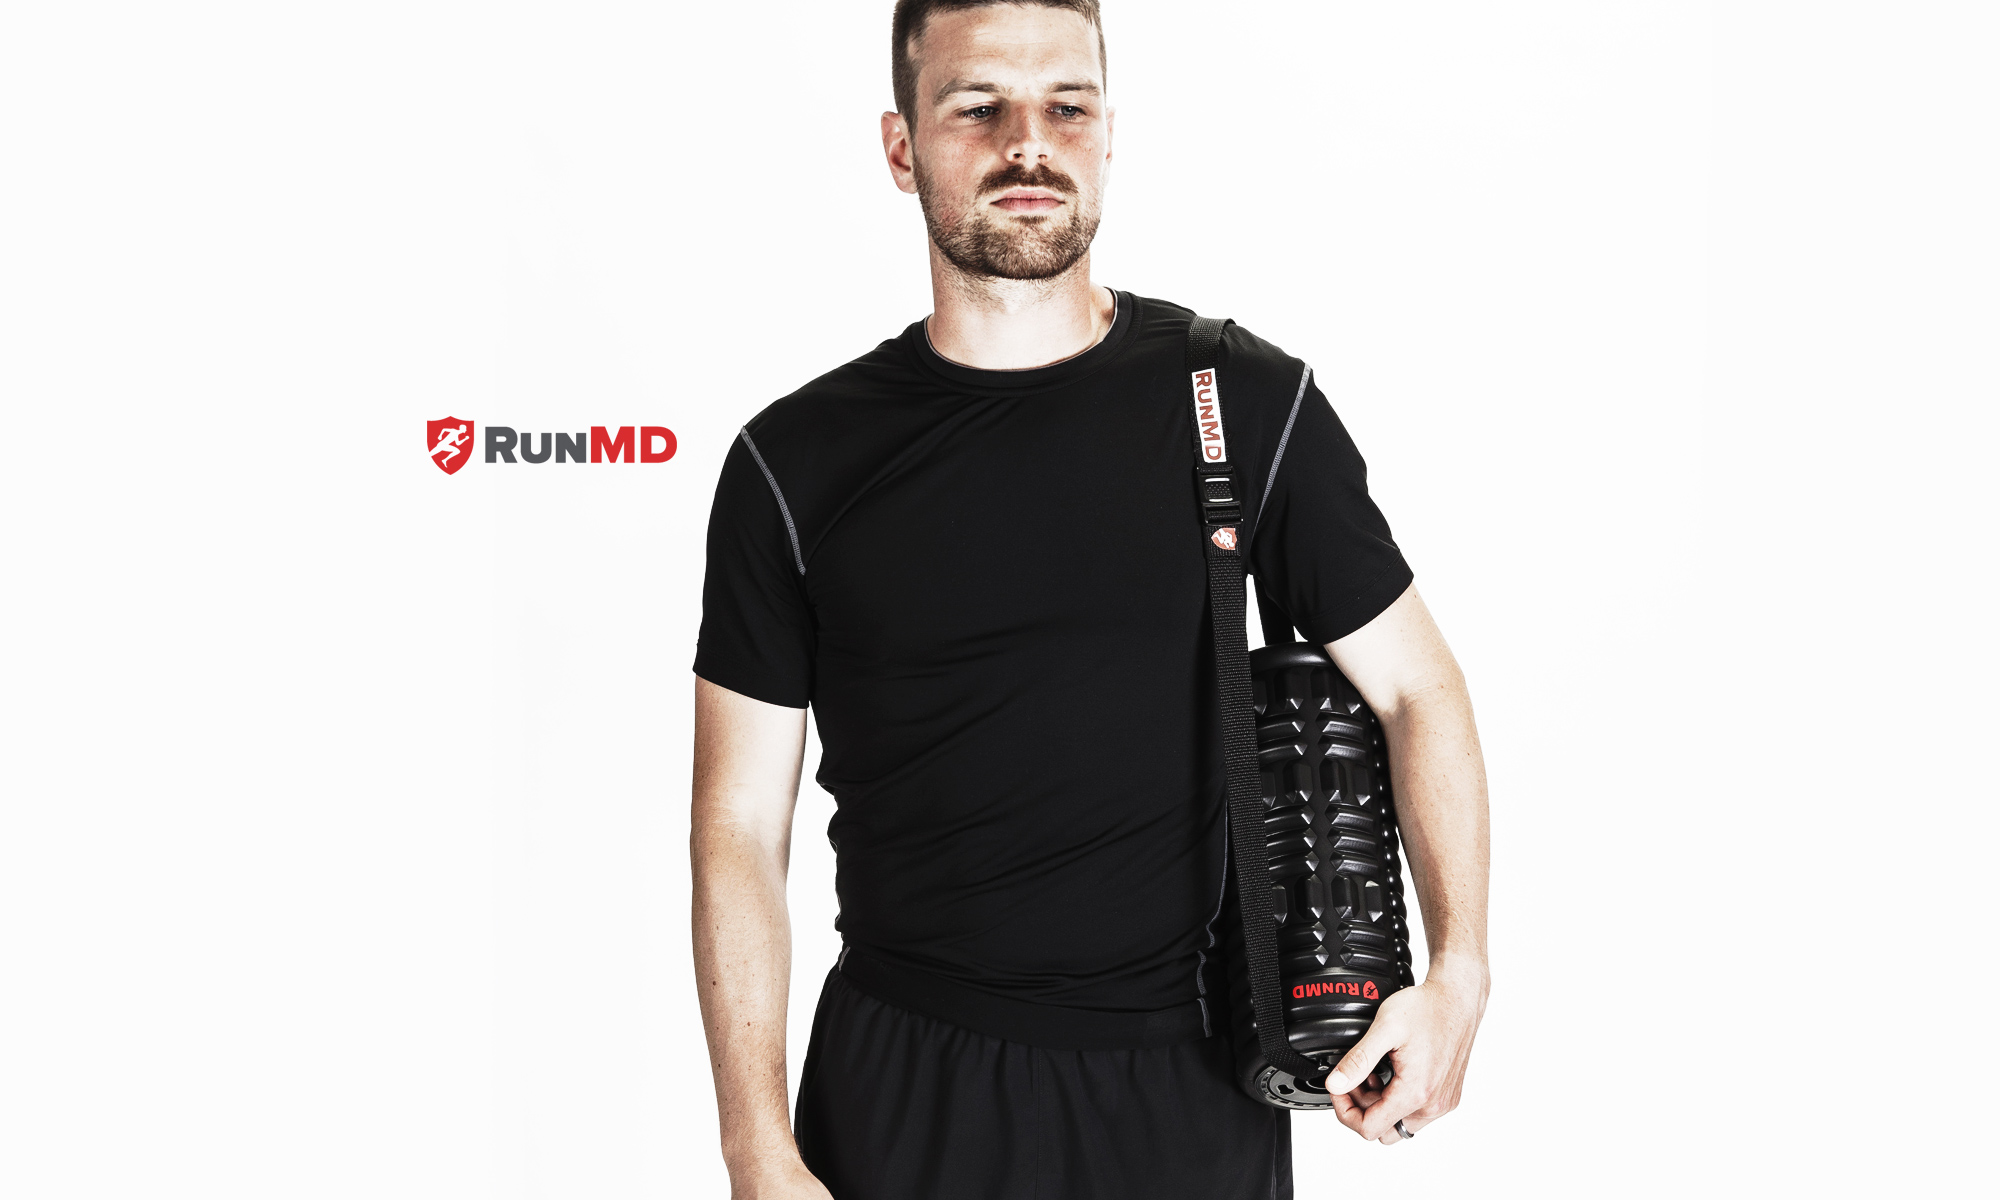 RunMD Branding and Creative Photography